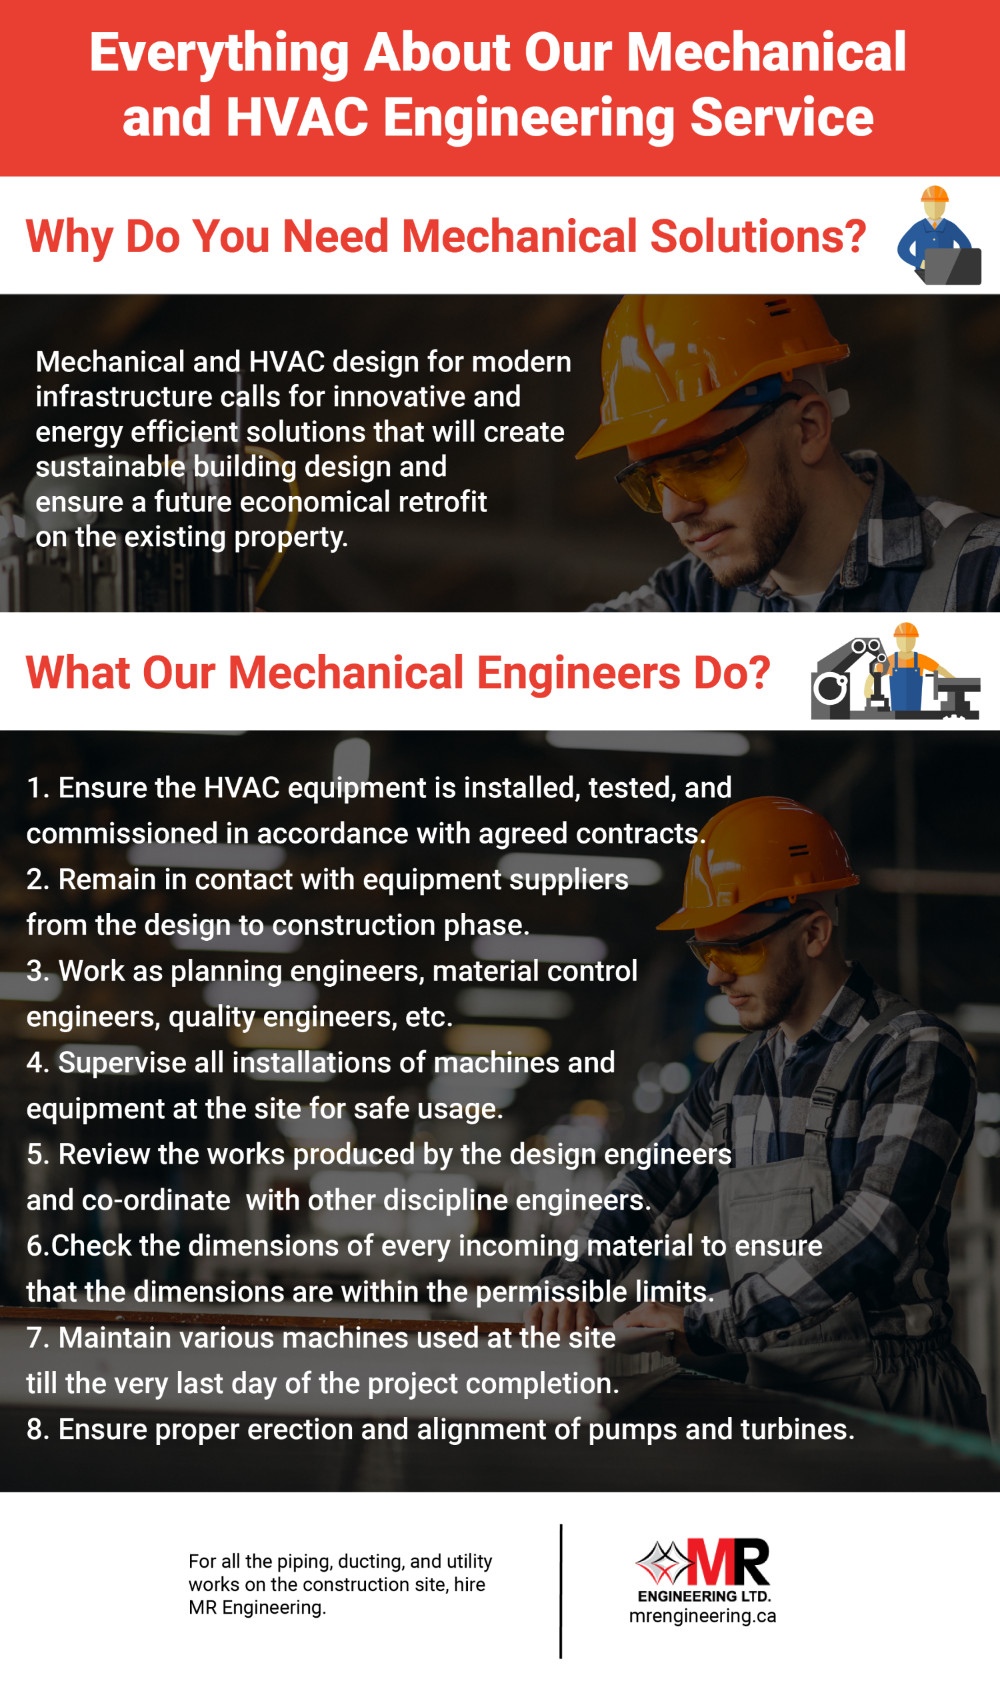 Our Mechanical and HVAC Engineering Service